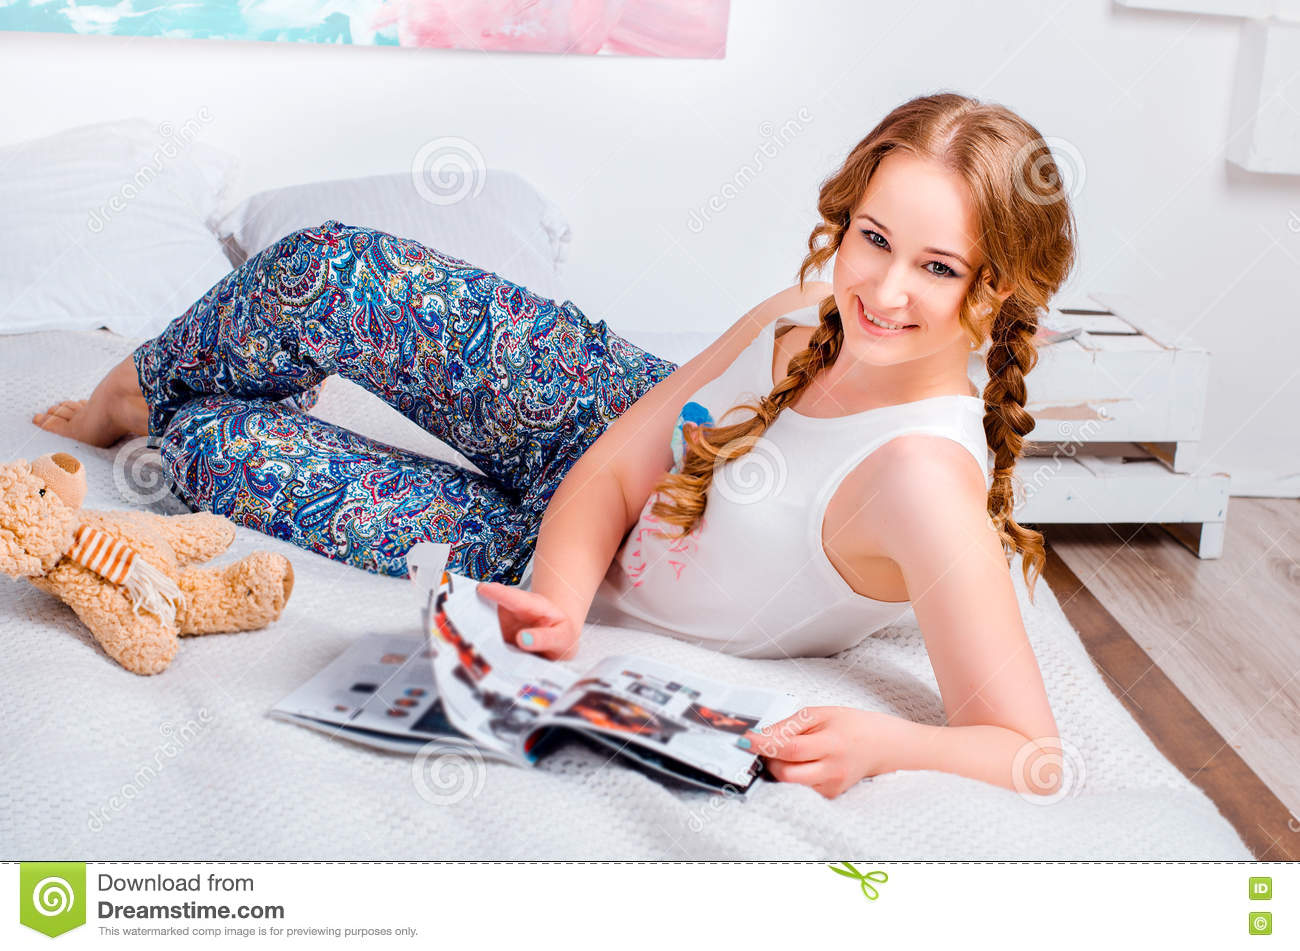 17921adad6f39e Cute young girl with two braids, at home wearing pajamas, lying on the bed,  with her soft toy bear, she reads a magazine and smiling